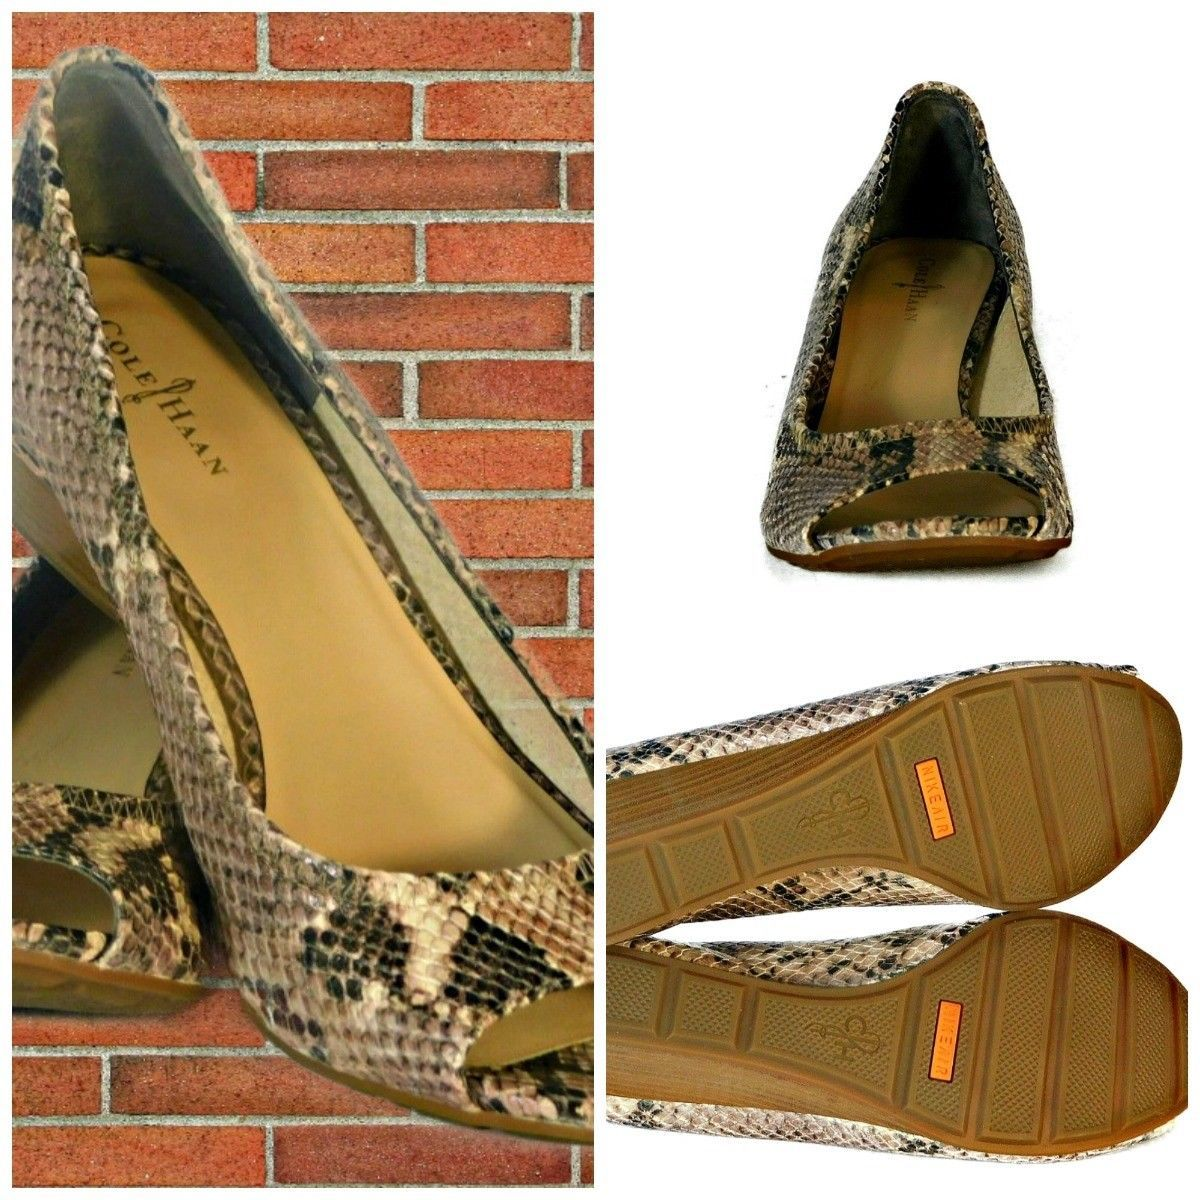 252b7526b0d COLE HAAN Air Roccia Snake Print Open Toe Wedge Heels Shoes Size 8.5M -   35.64